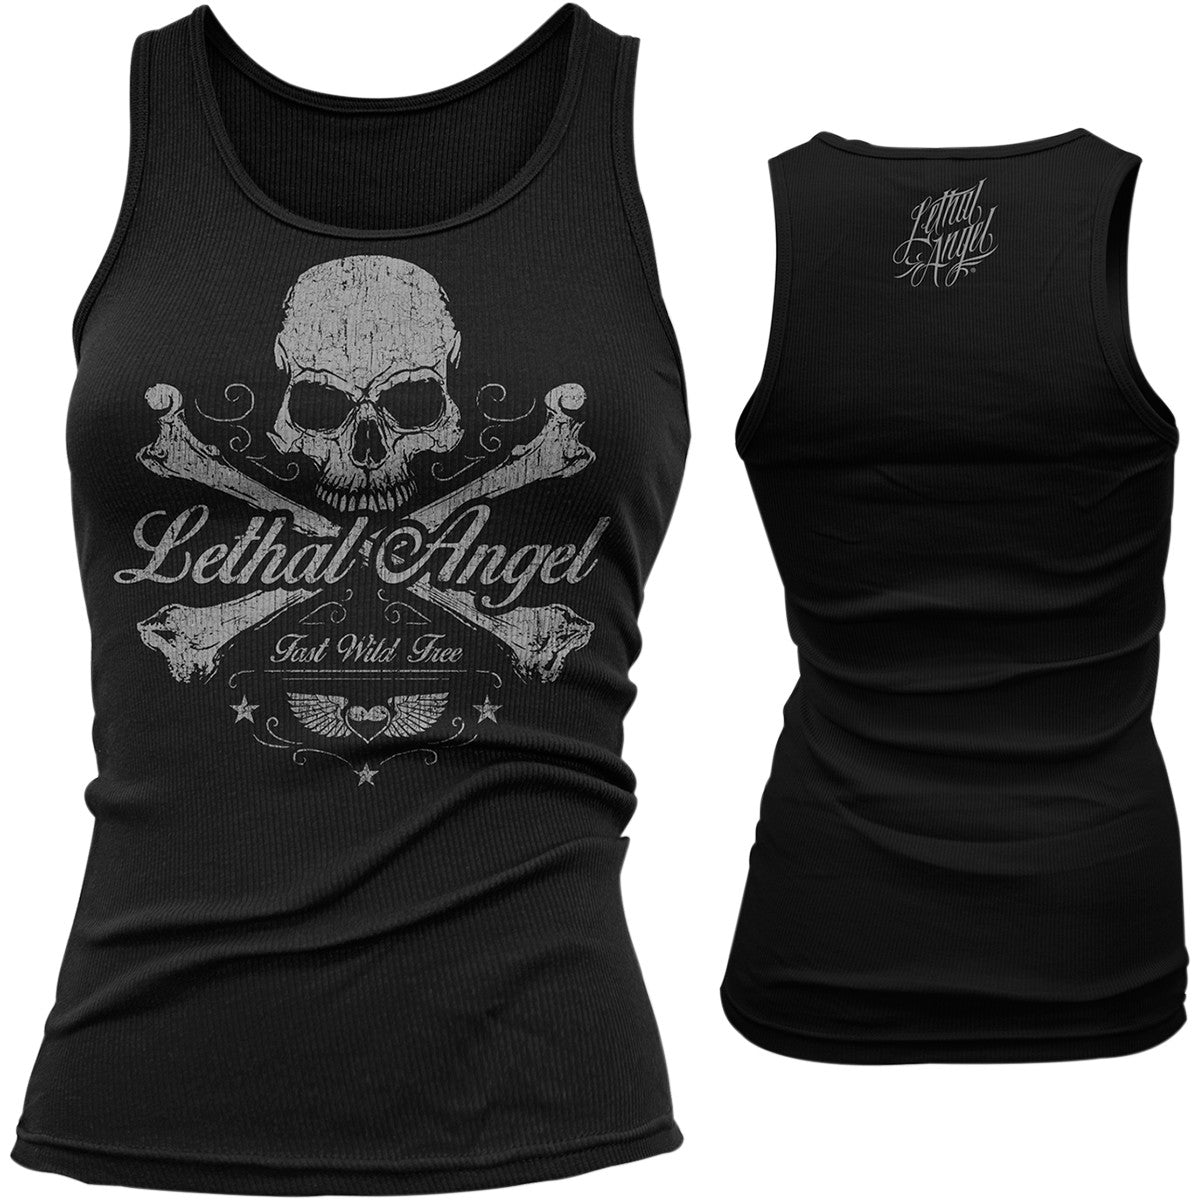 Lethal Threat Women'S Tank Tops